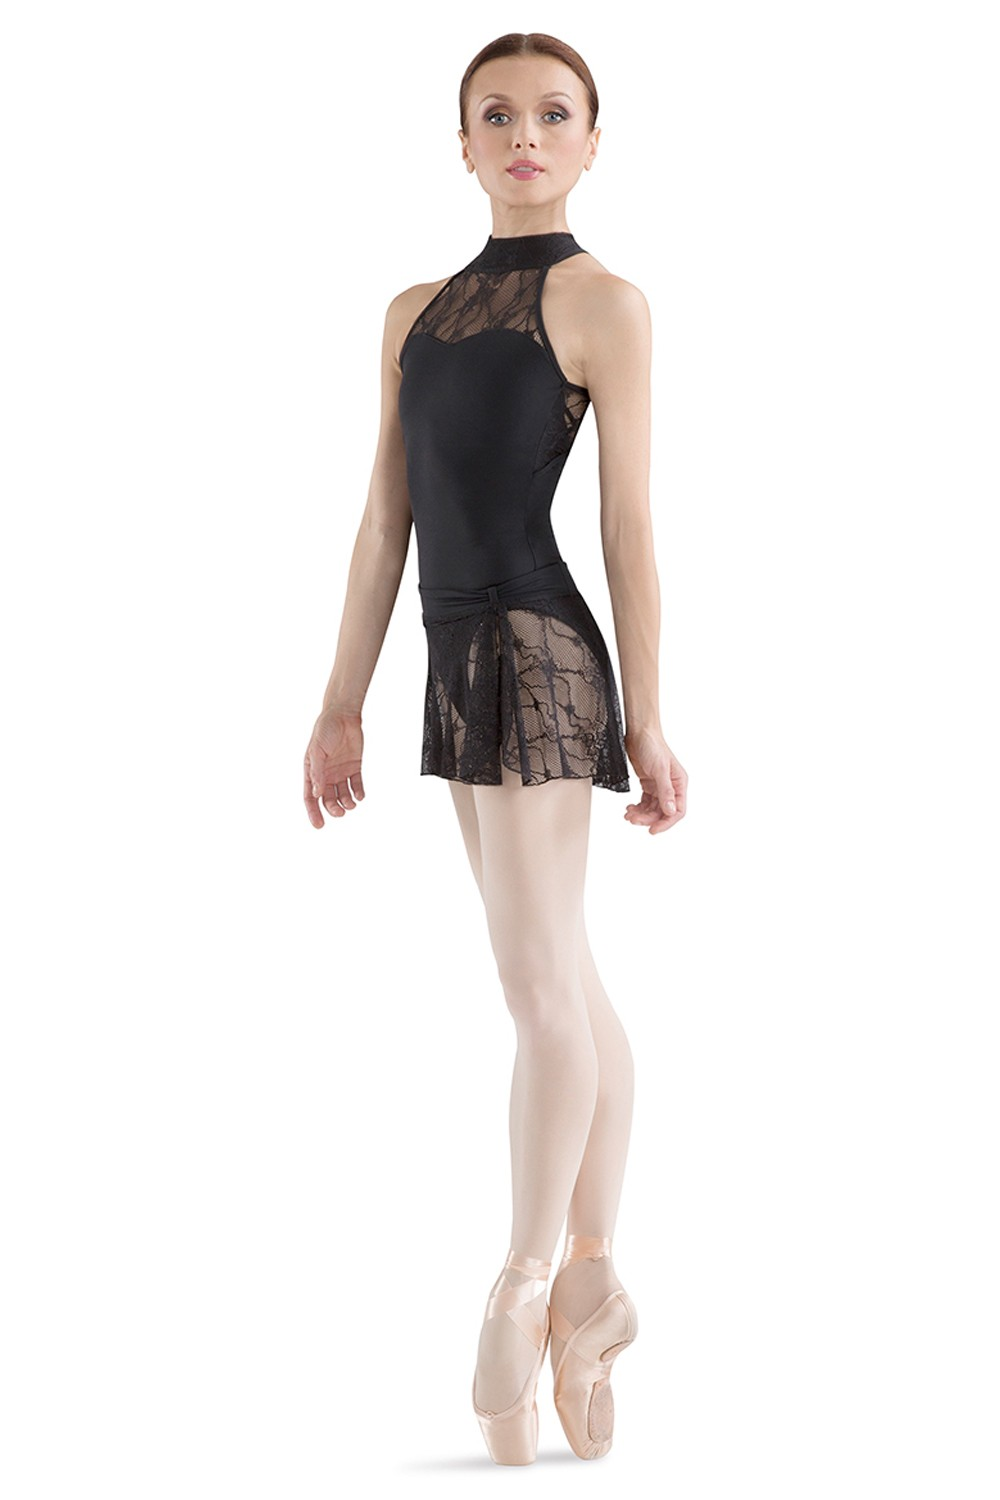 Ebo Women's Dance Leotards